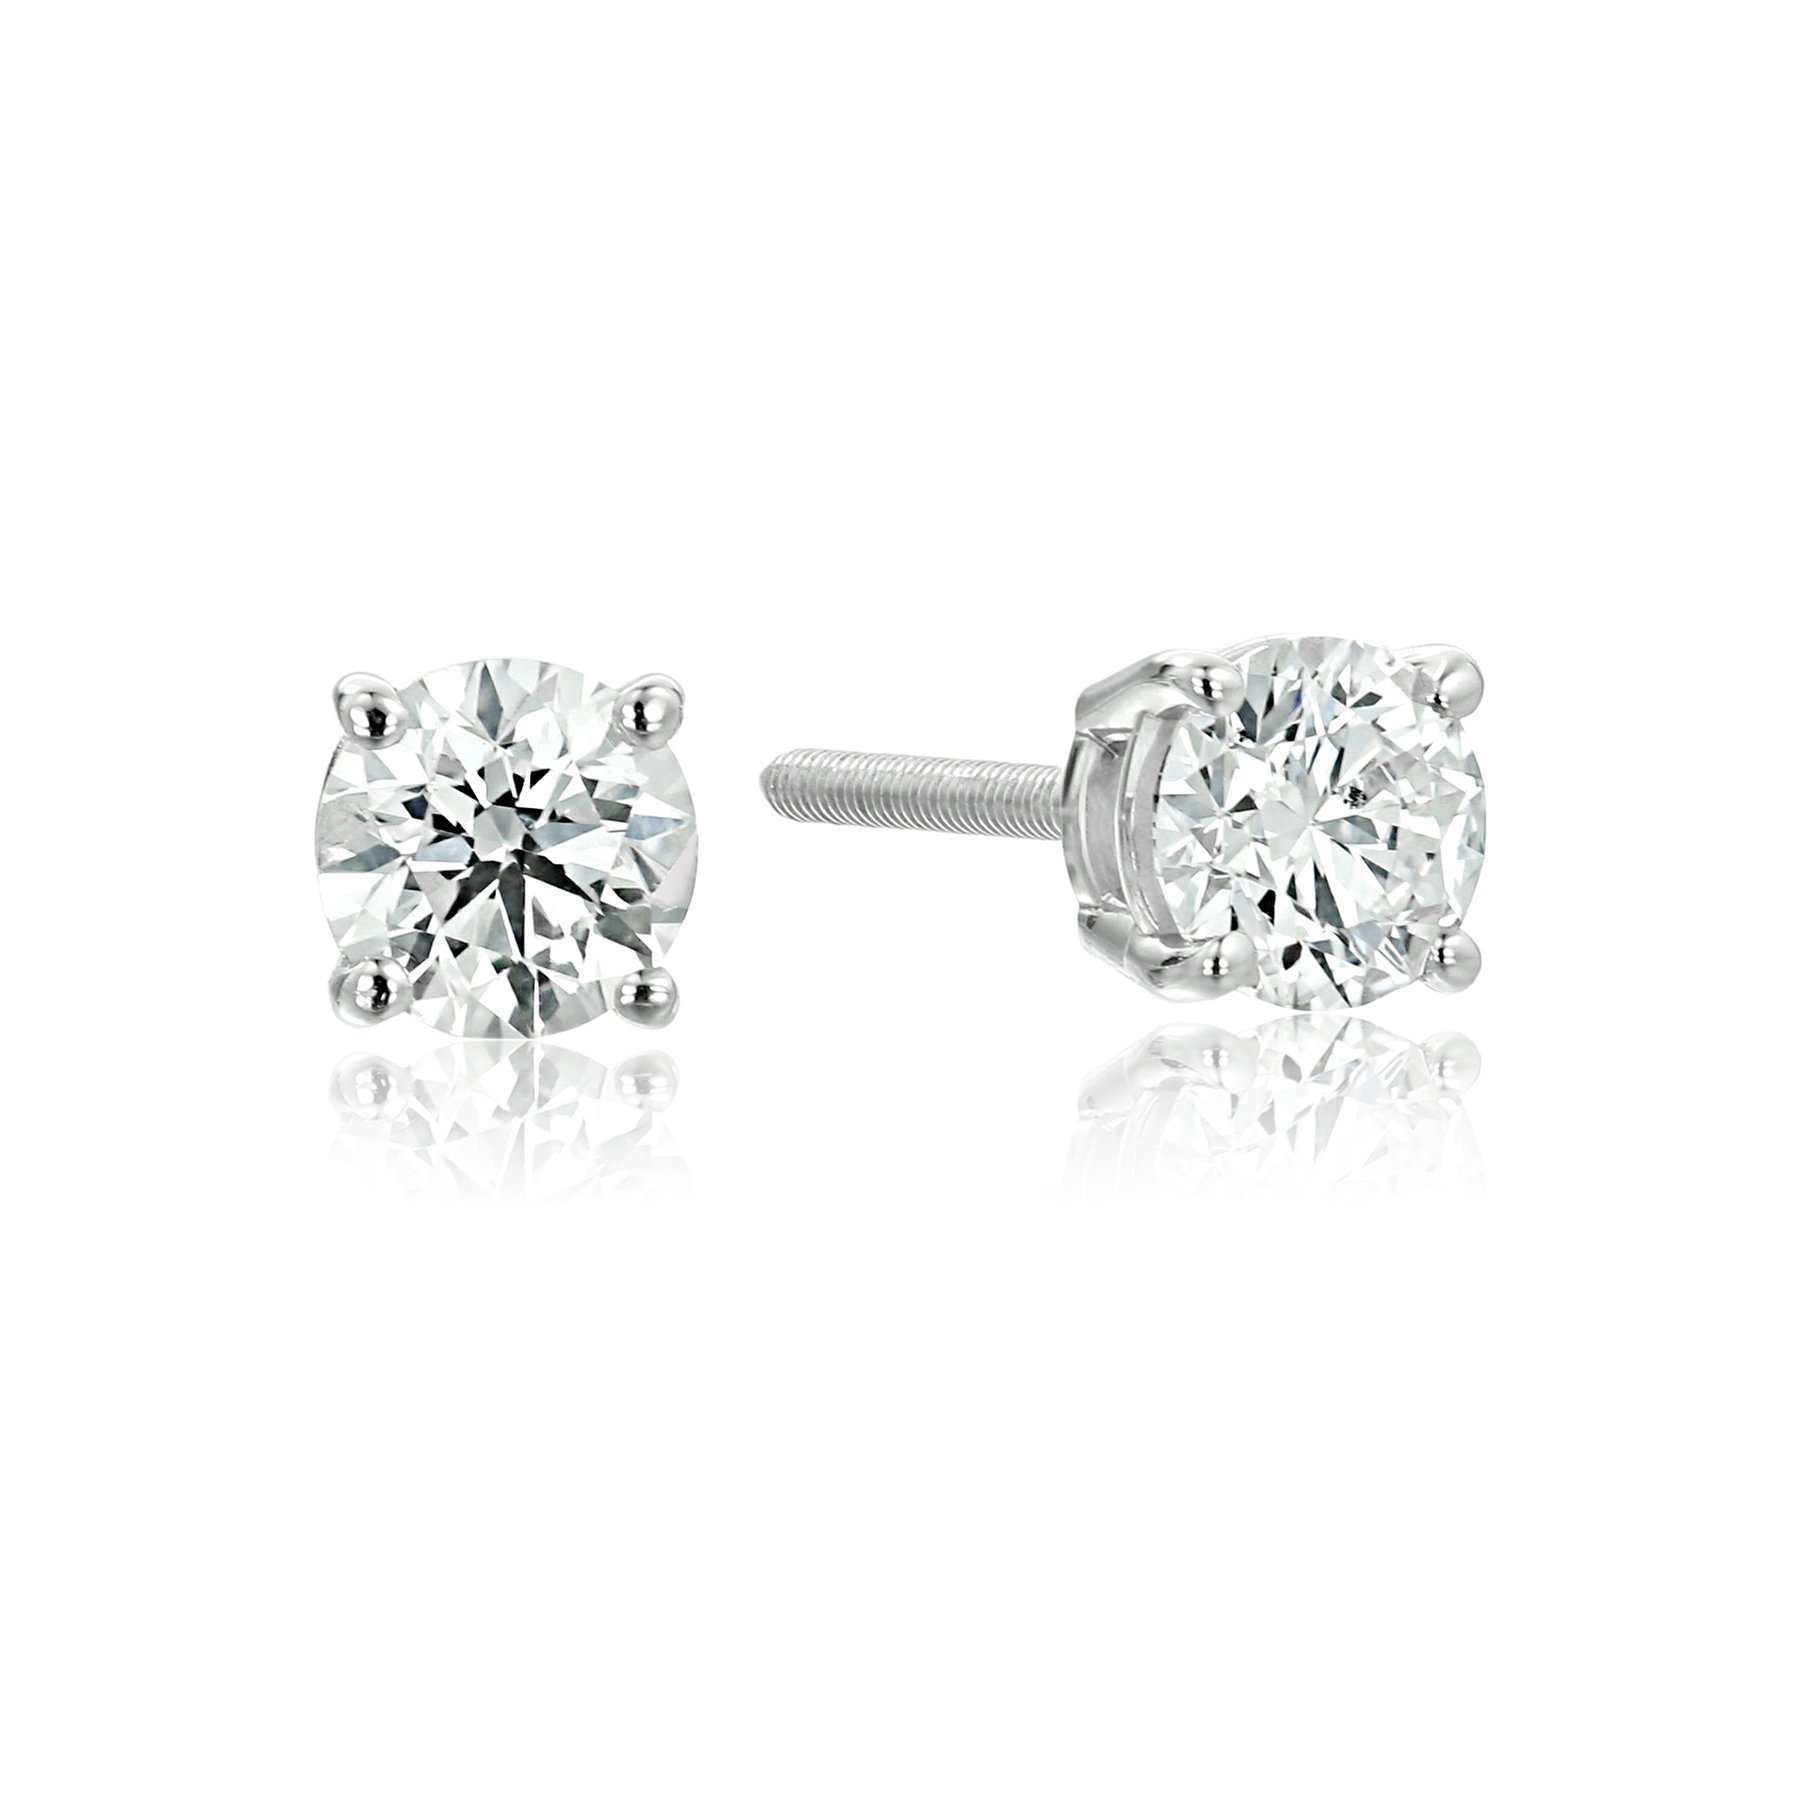 IGI-Certified 14k White Gold Round-Cut Diamond Stud Earrings (1/2 cttw, H-I Color, I1 Clarity)